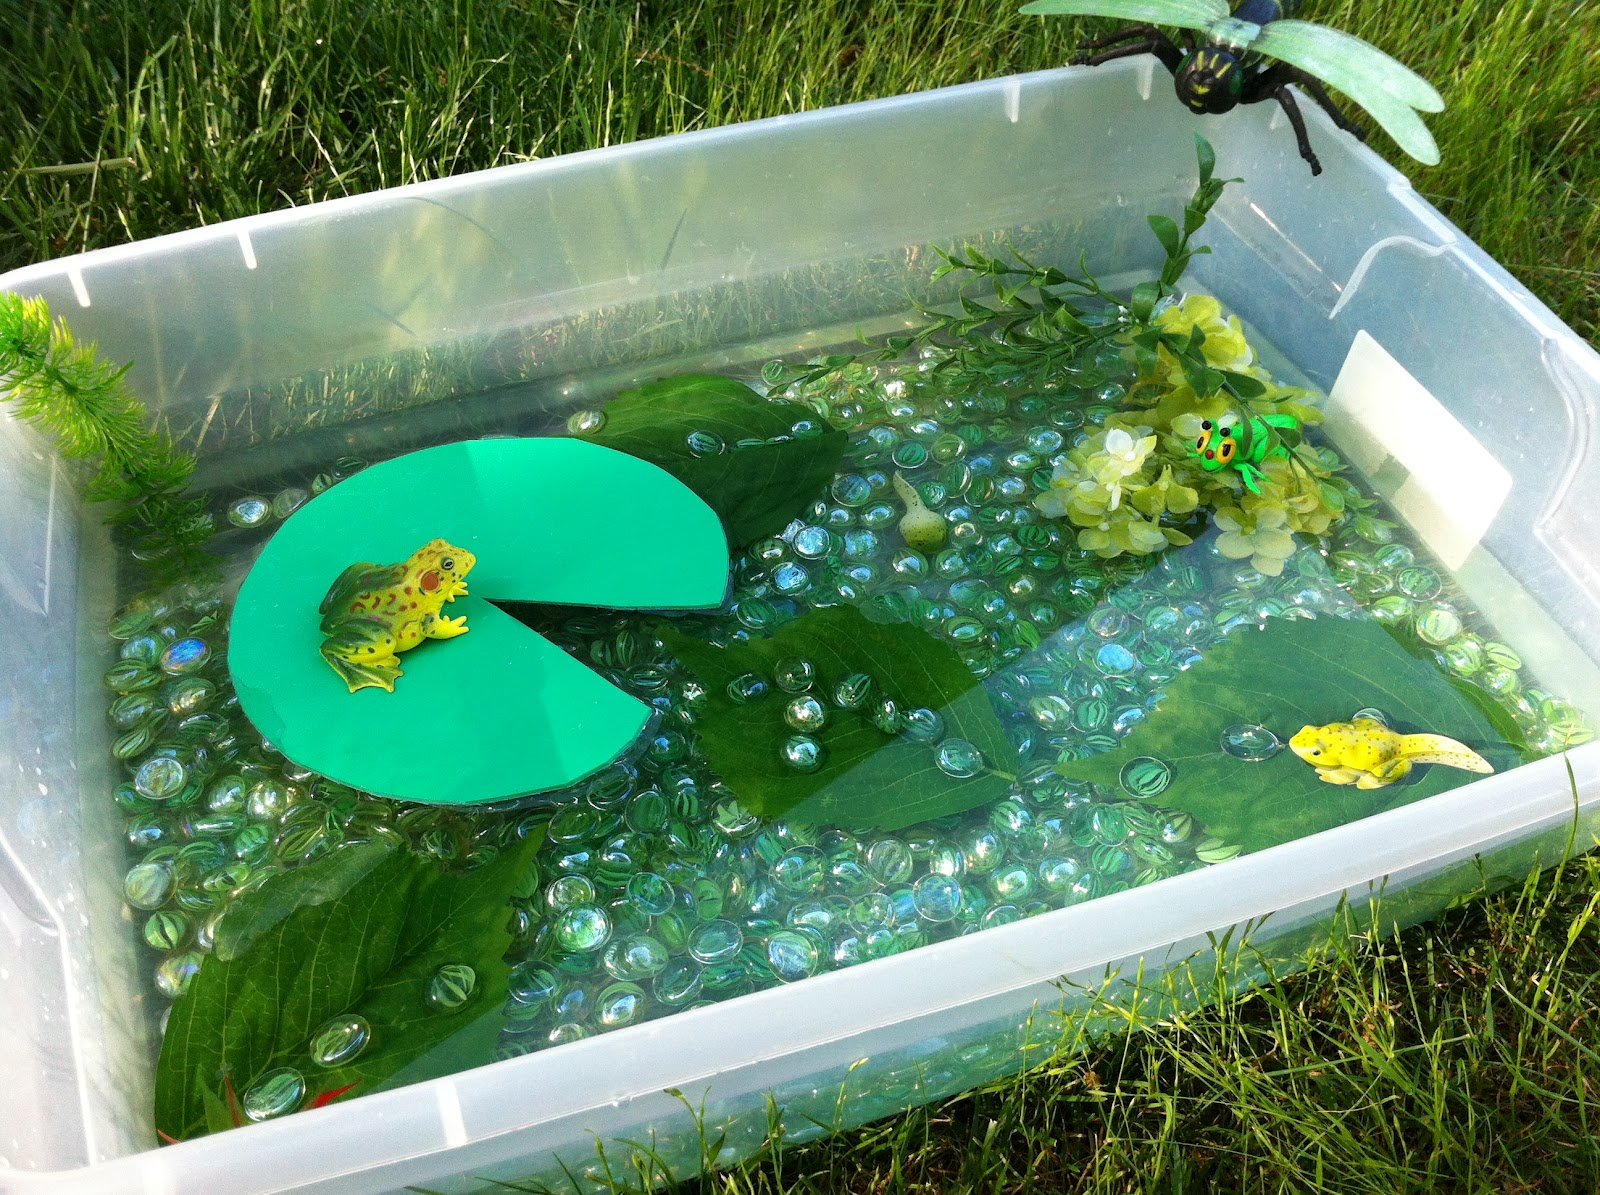 Play create explore pond lifecycle of a frog sensory bin for Garden pond design books